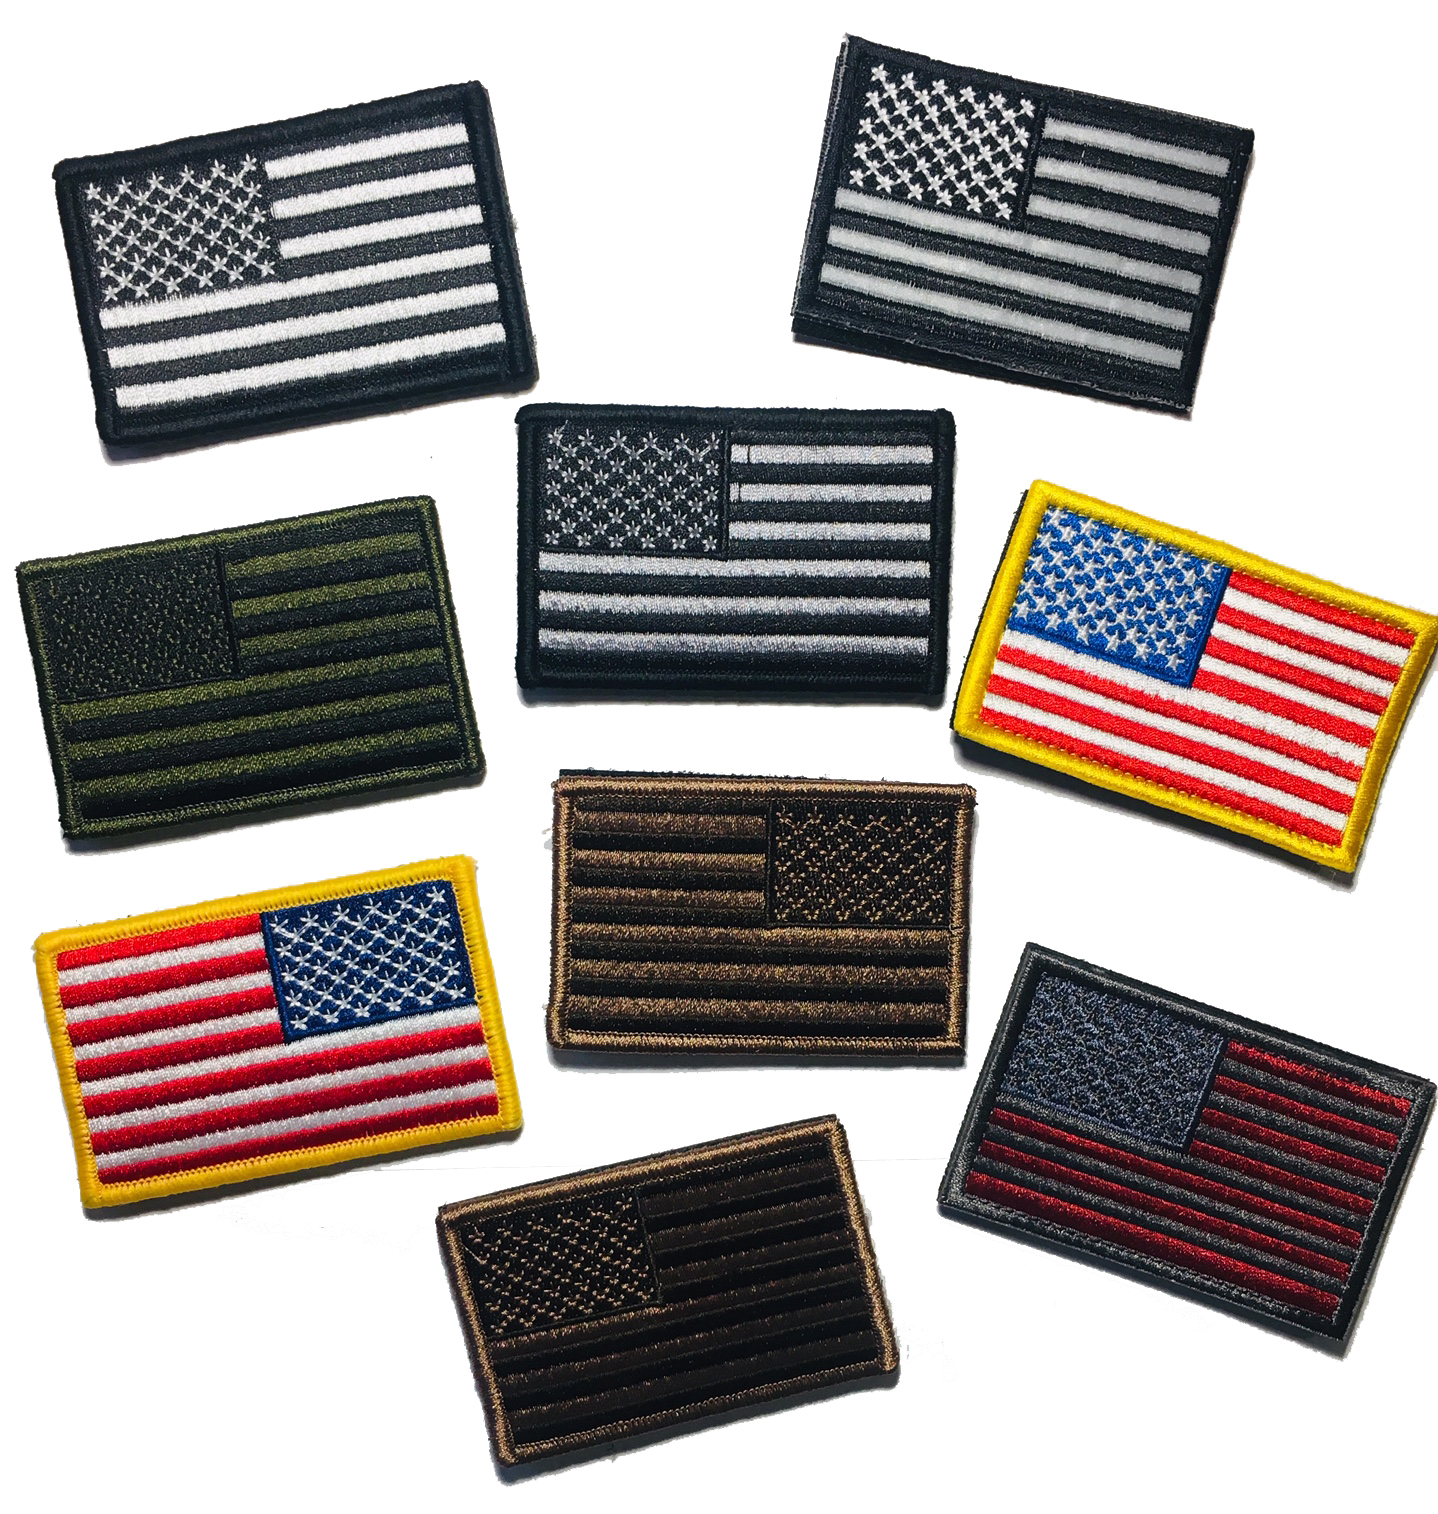 3.5 X 2 Inch Black and Pink US Made American Patriotic Flag Durable USA Morale Uniform Patch Empire Tactical USA